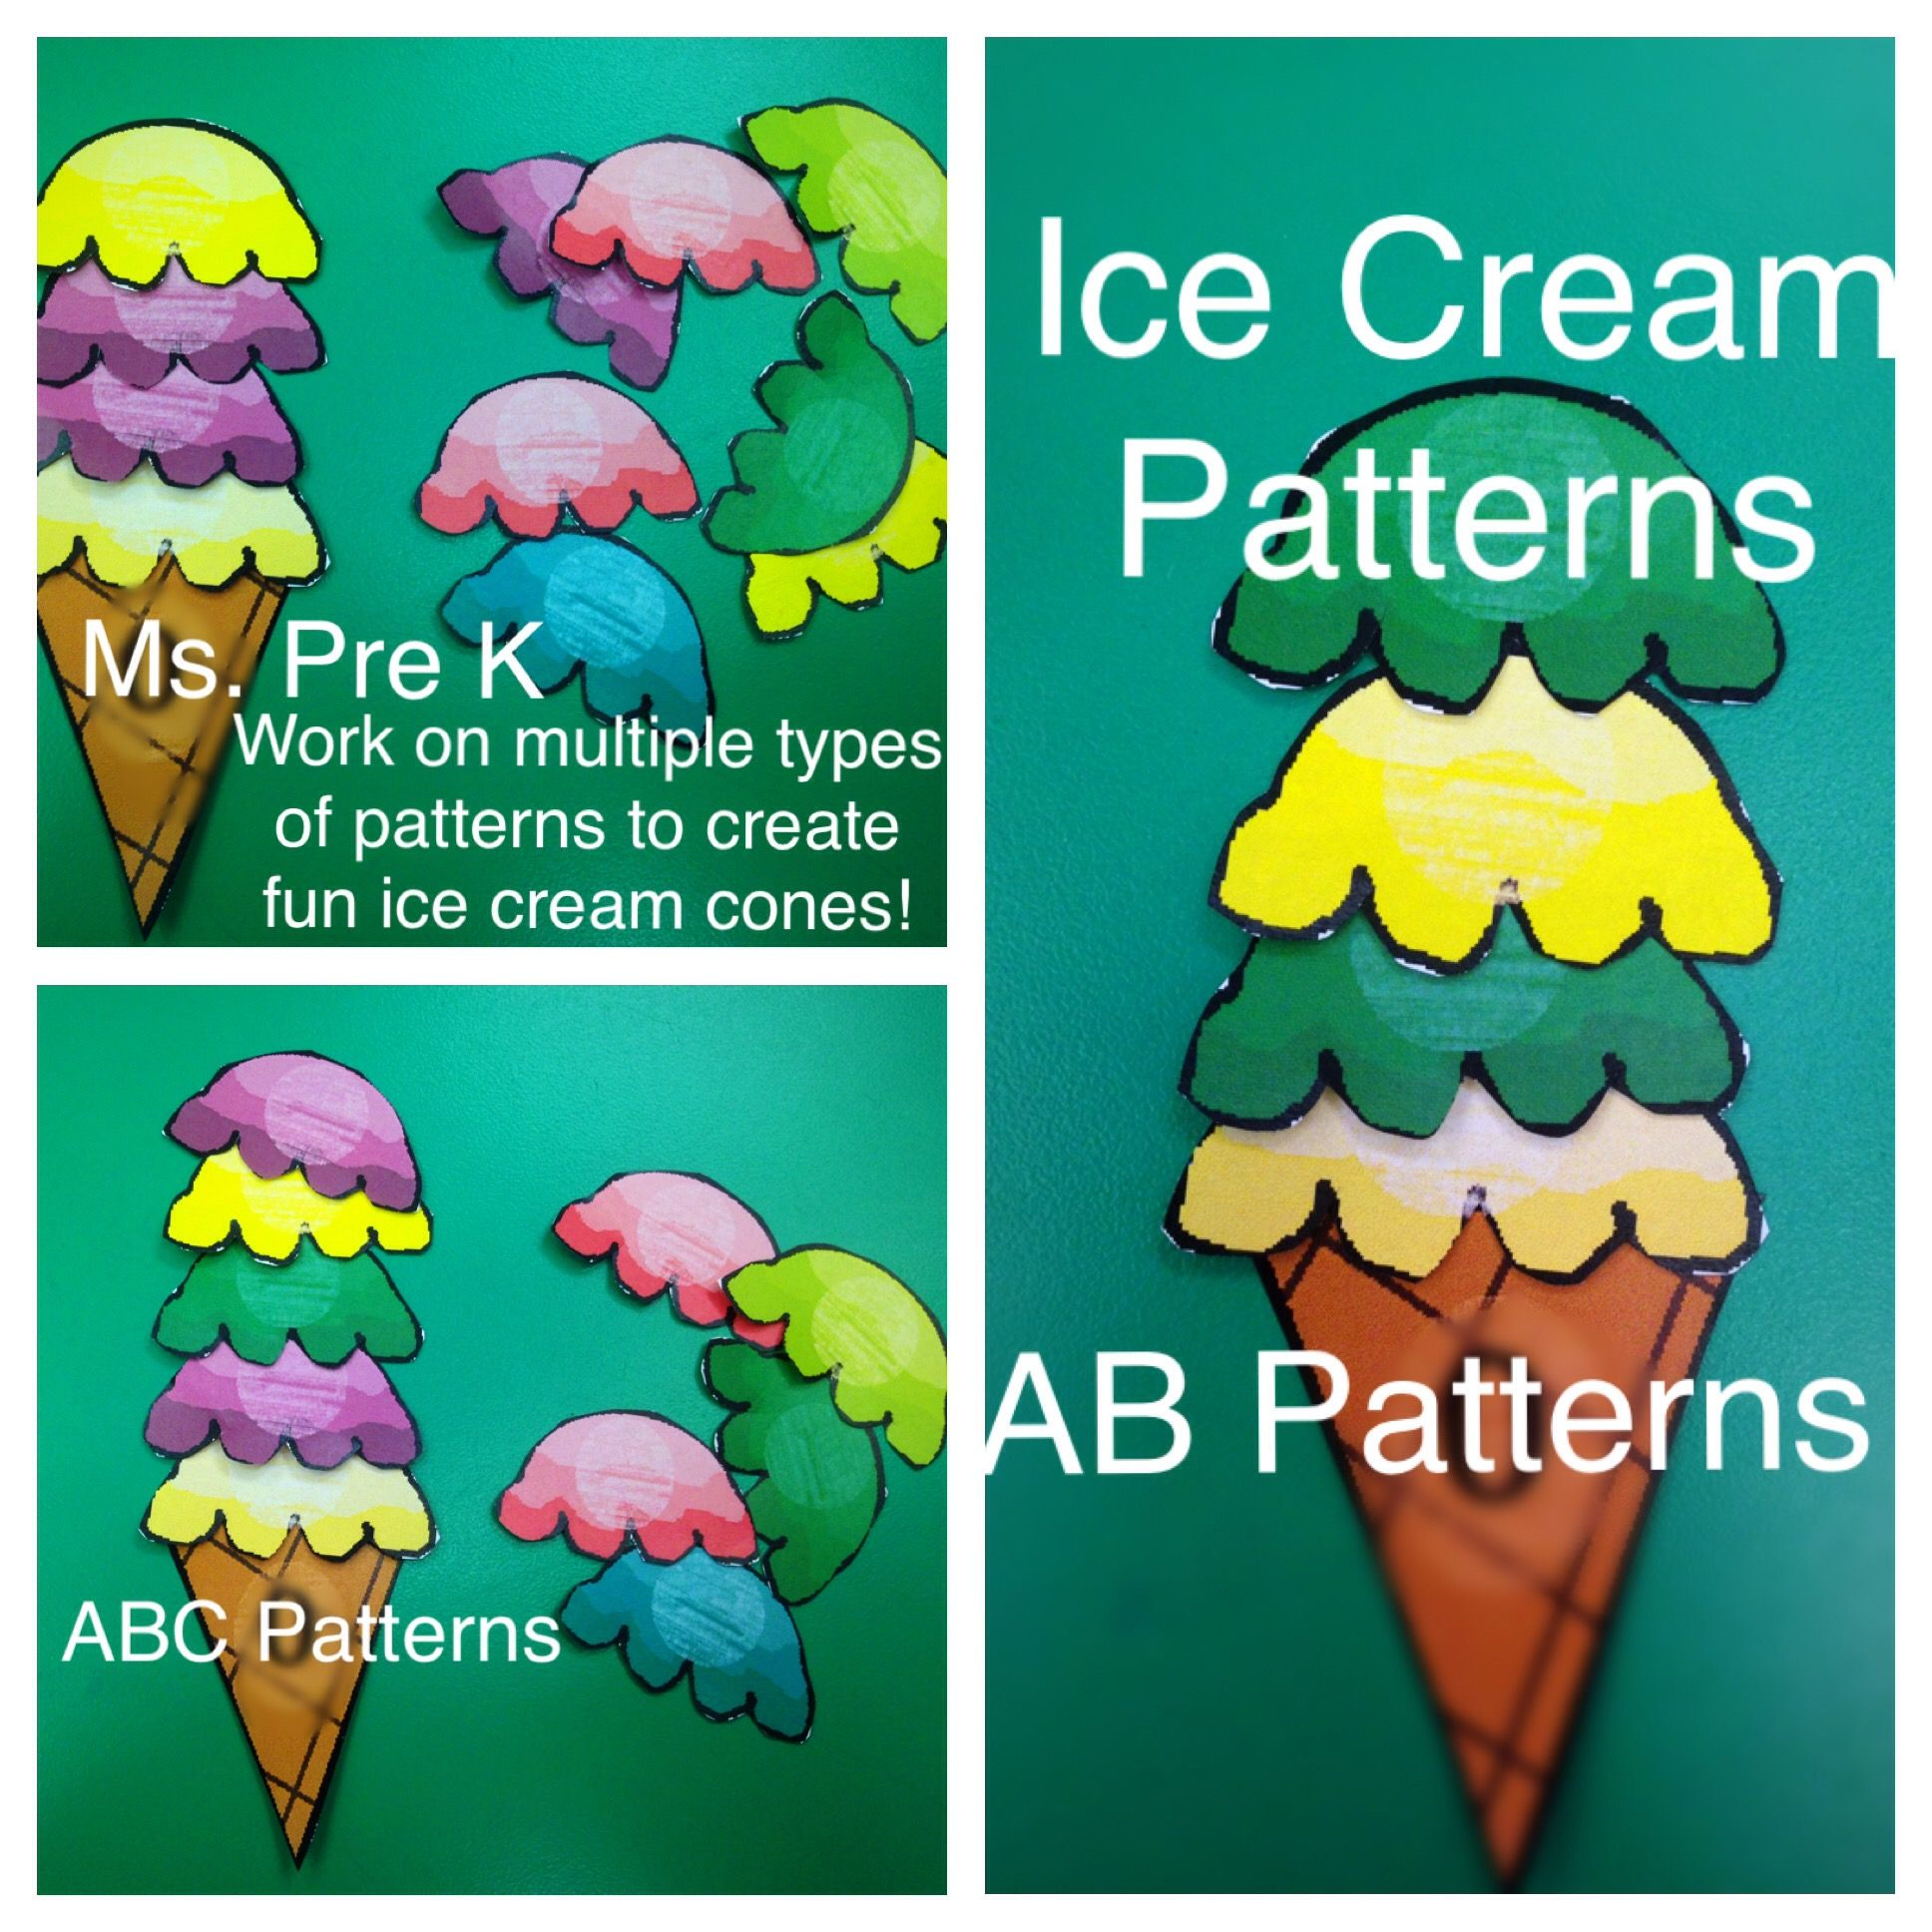 Preschool Ice Cream Patterns in 2018 | Primary Materials from TPT ...